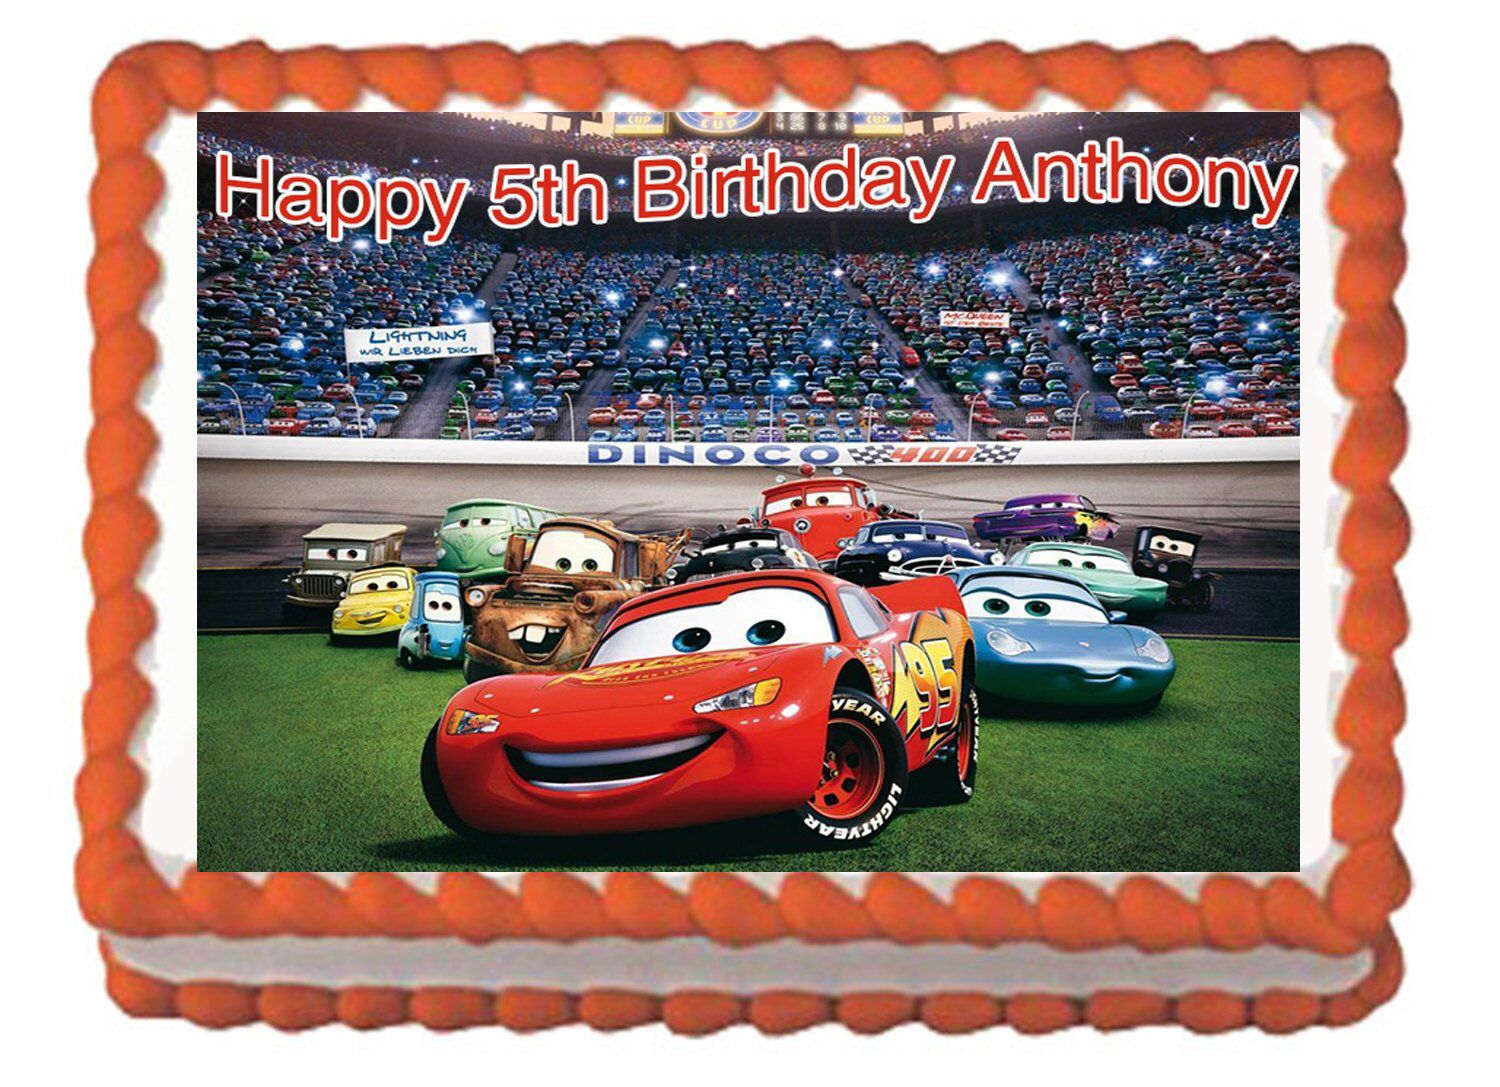 Cars birthday cake lightning mcqueen cake topper with free